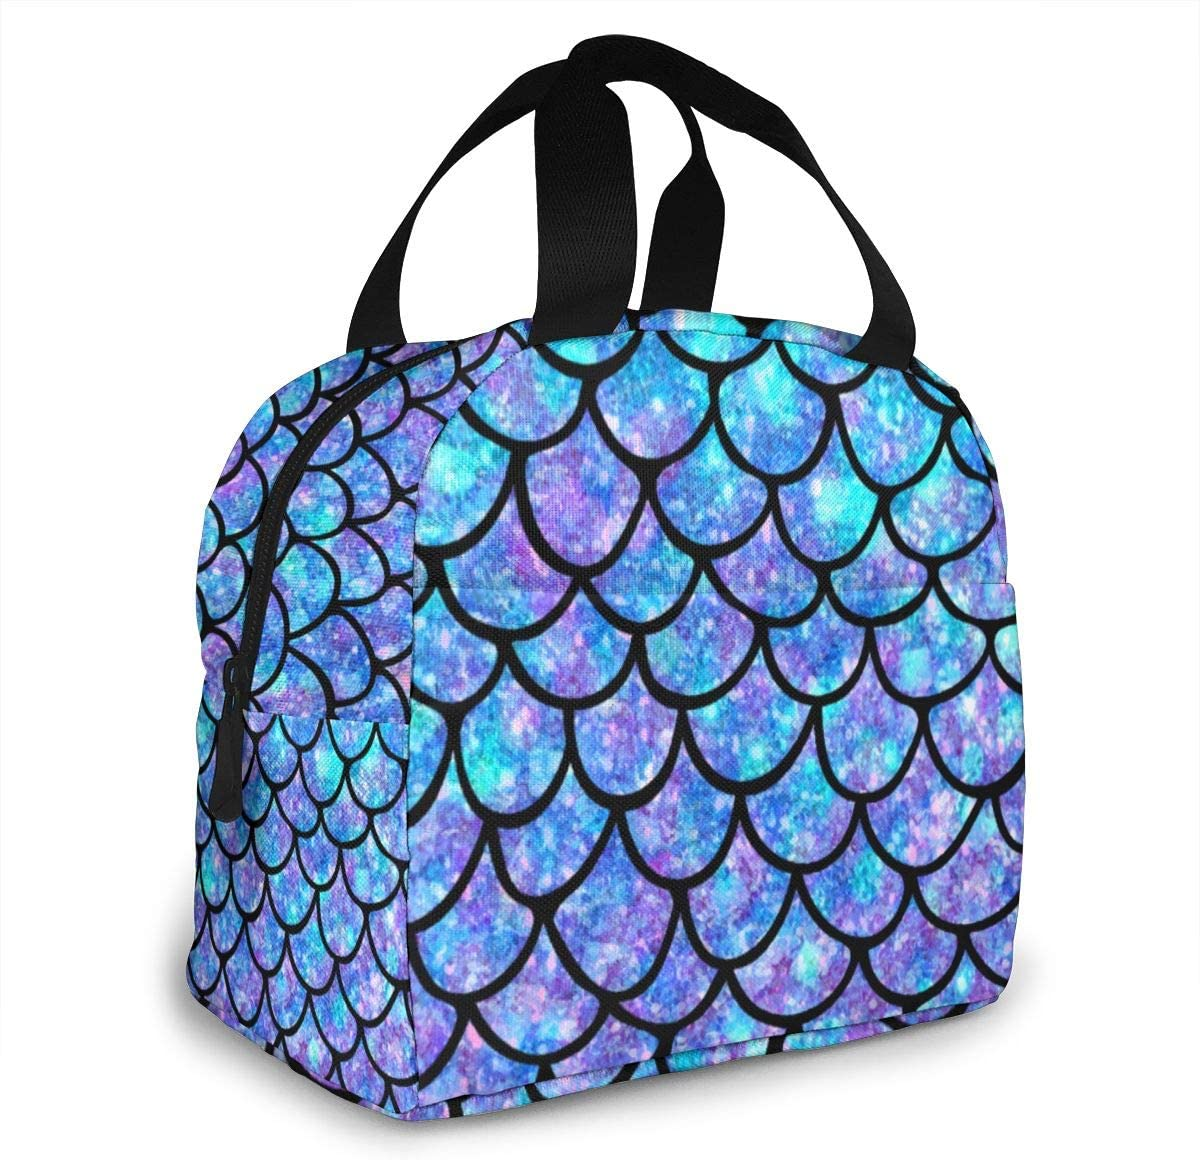 70% OFF Outlet Mermaid Scale Seattle Mall Insulated Lunch Bag Cooler Tote Pocket With Front